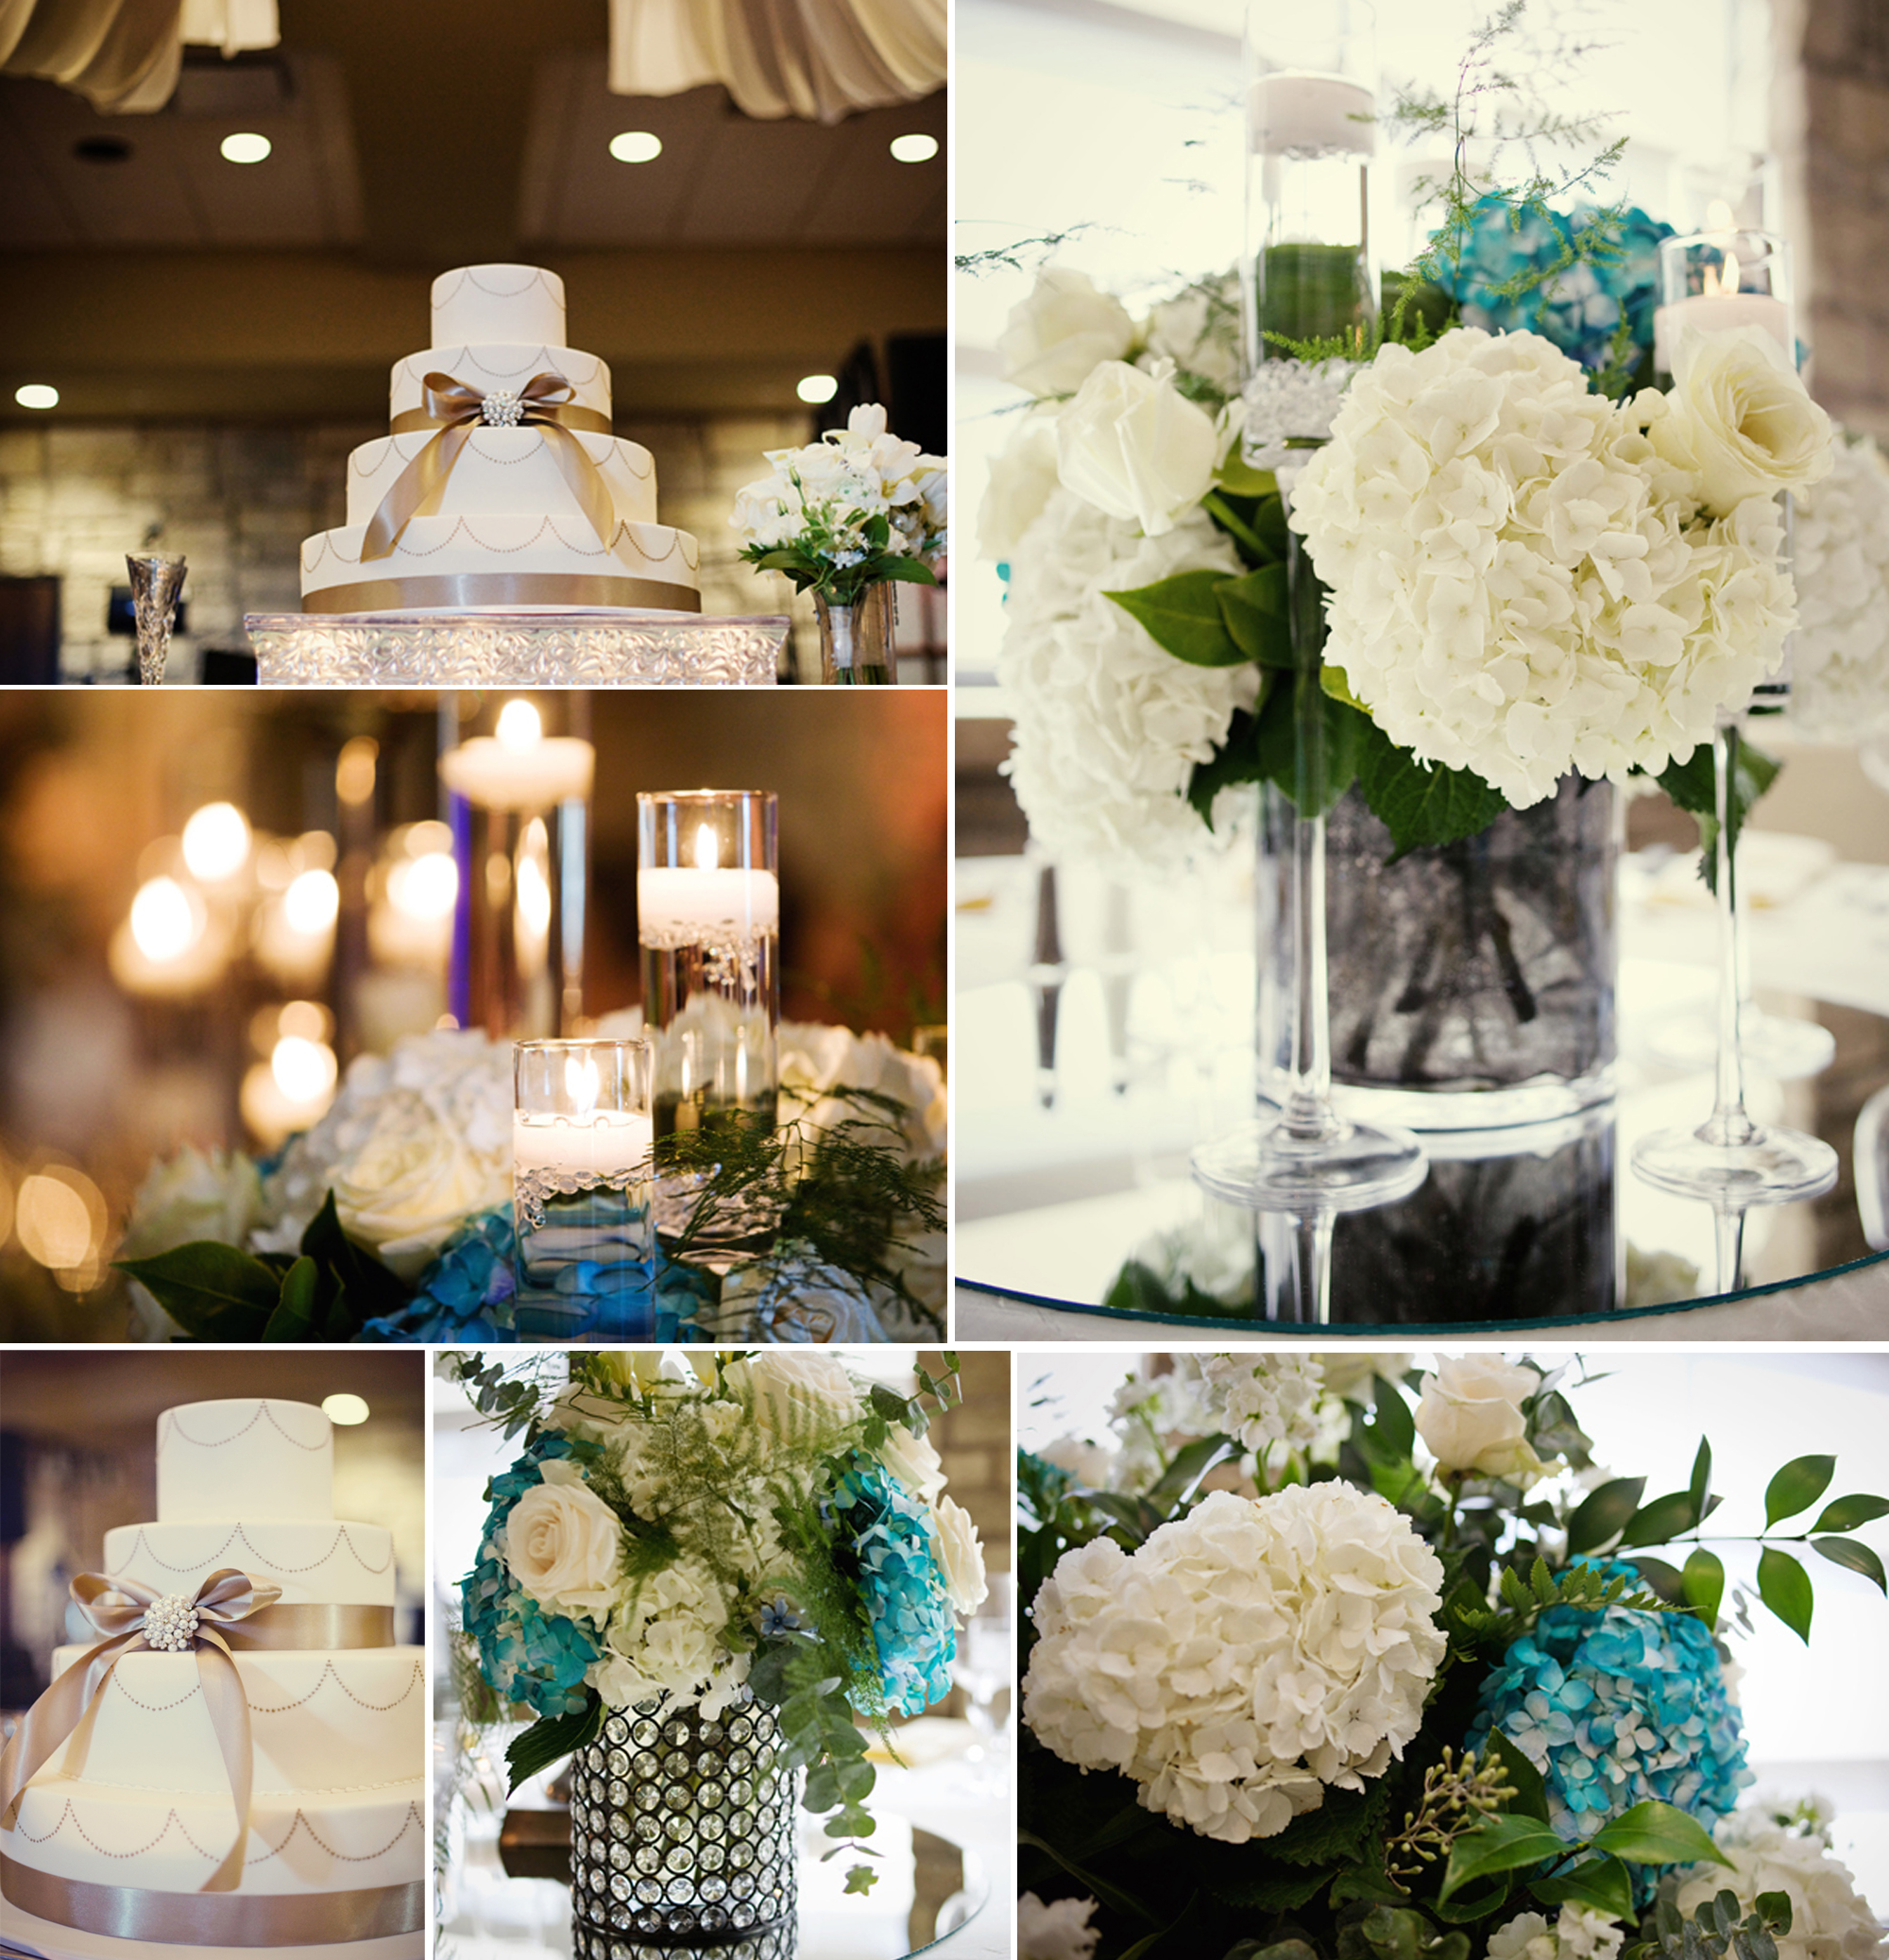 Elegant Wedding Reception Decoration: Reception Centerpieces